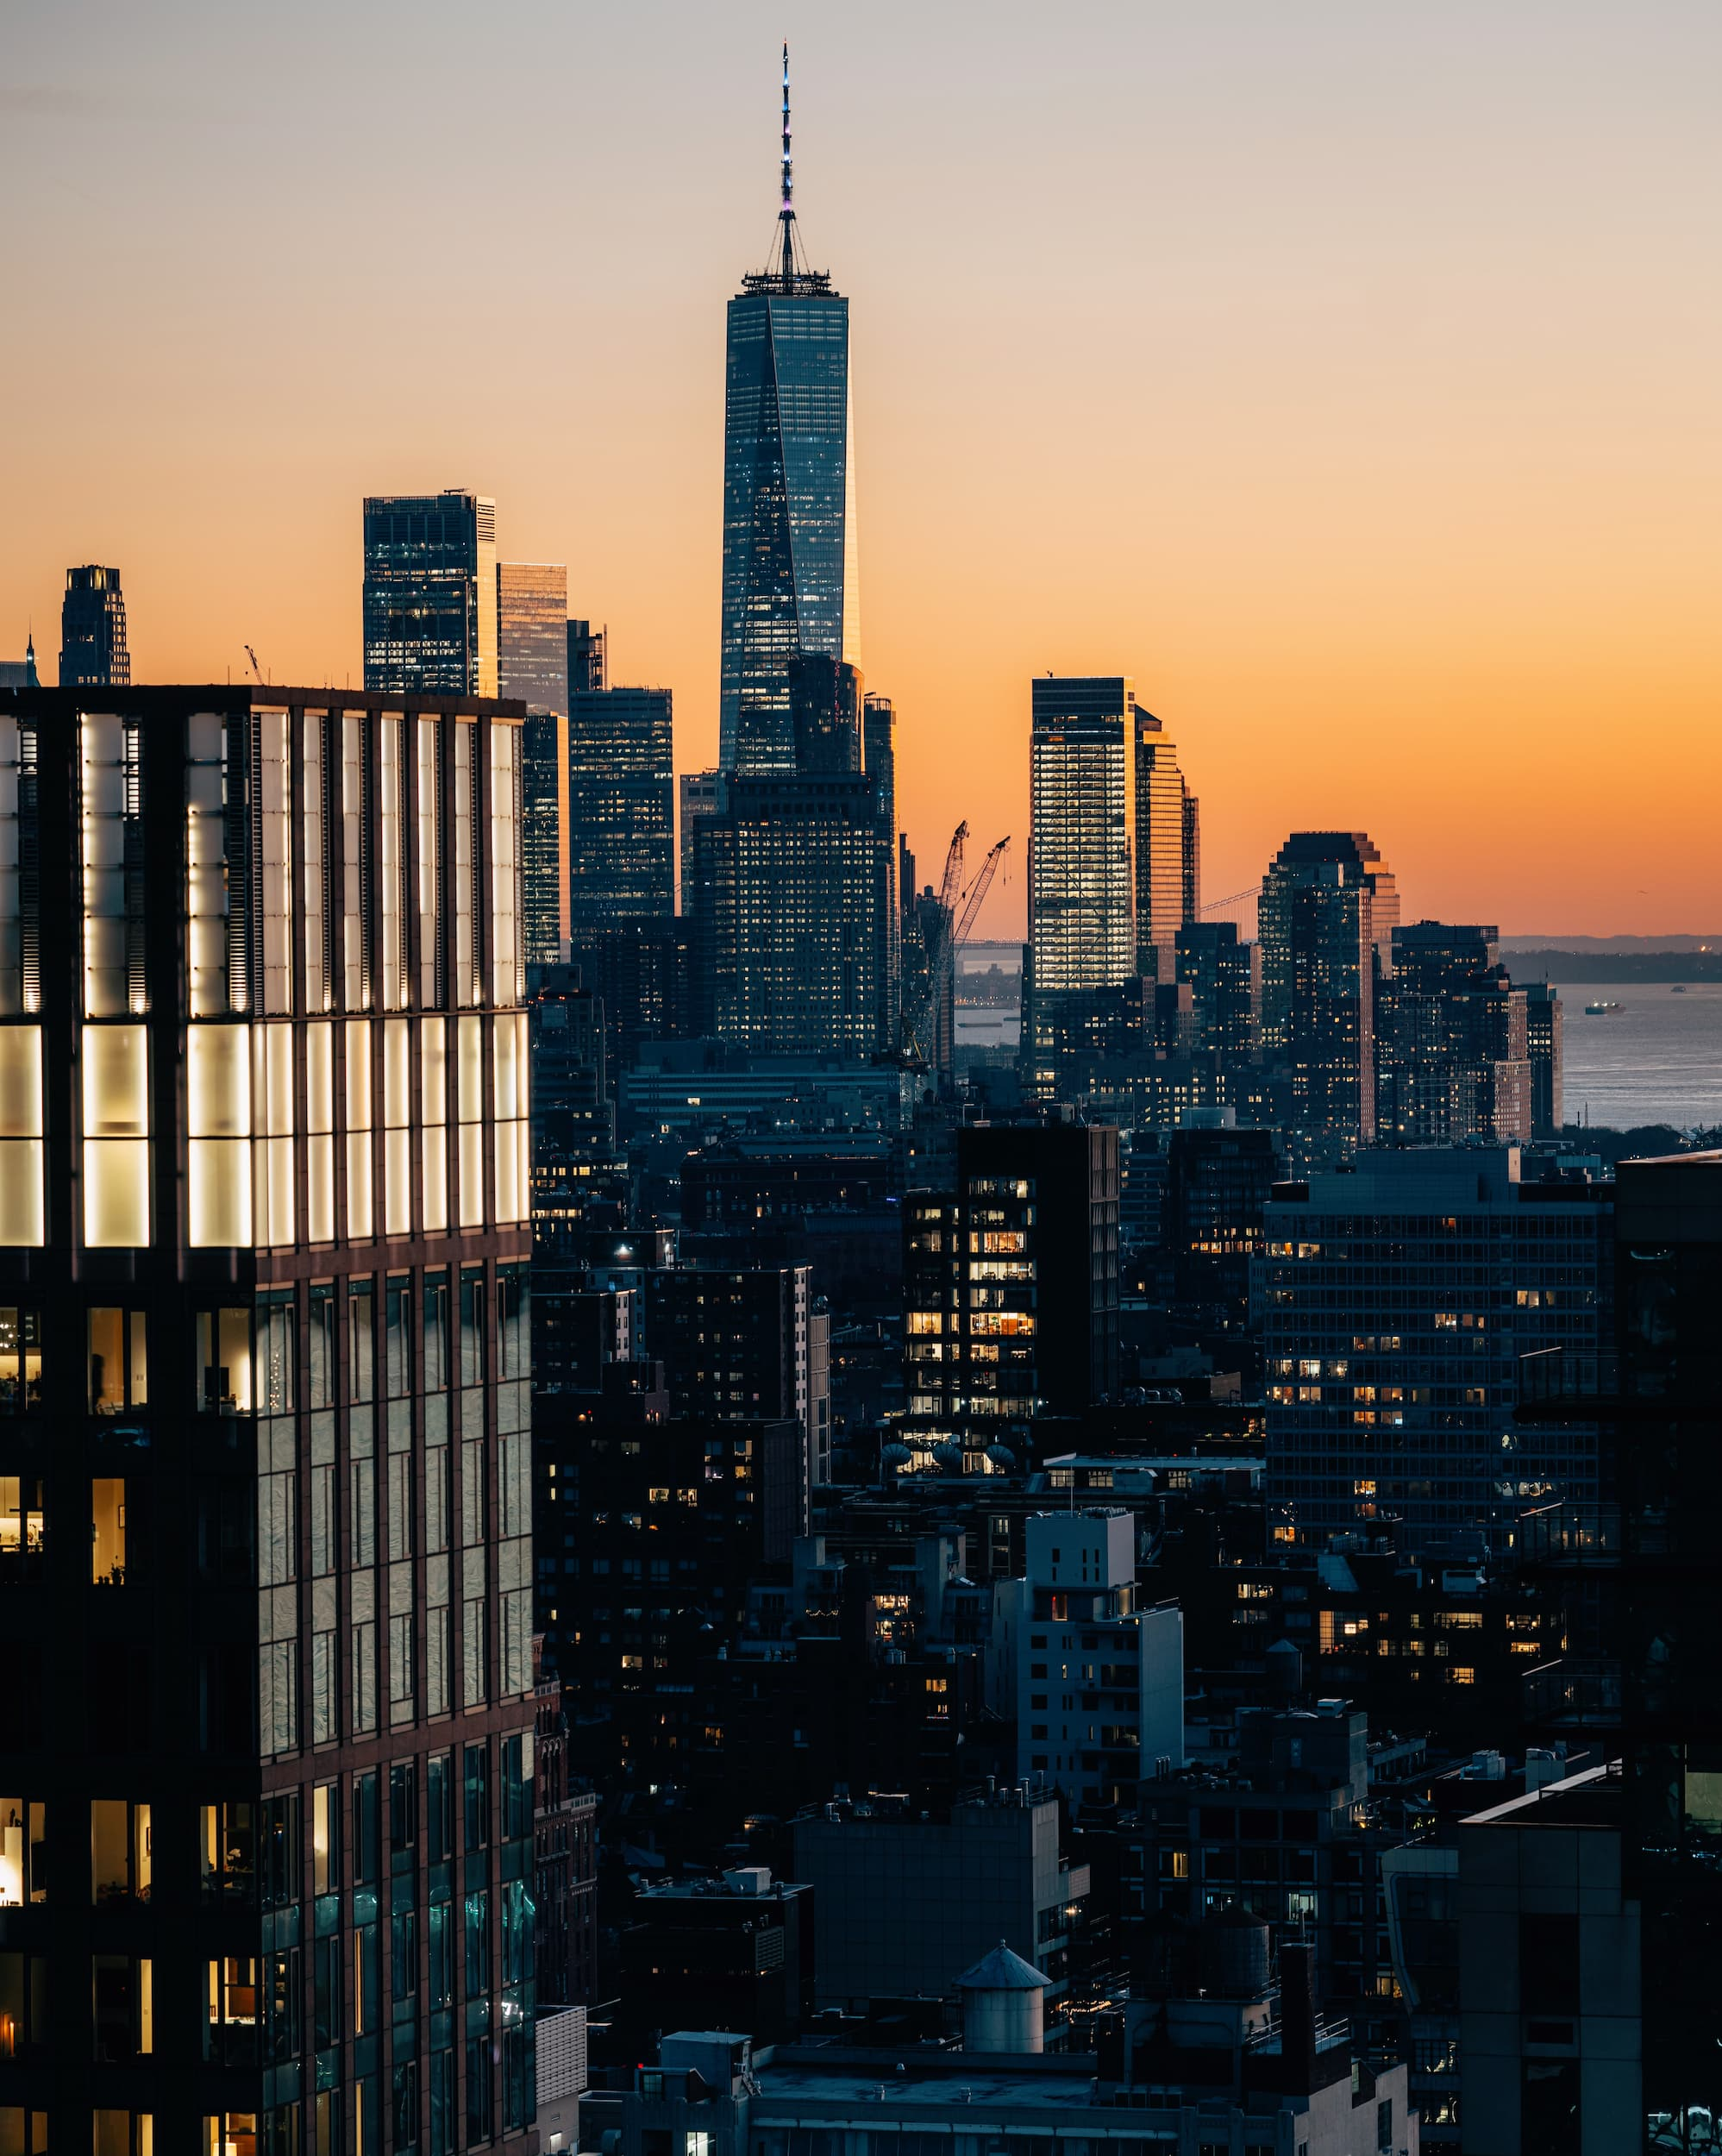 view of city skyline with freedom tower at sunset